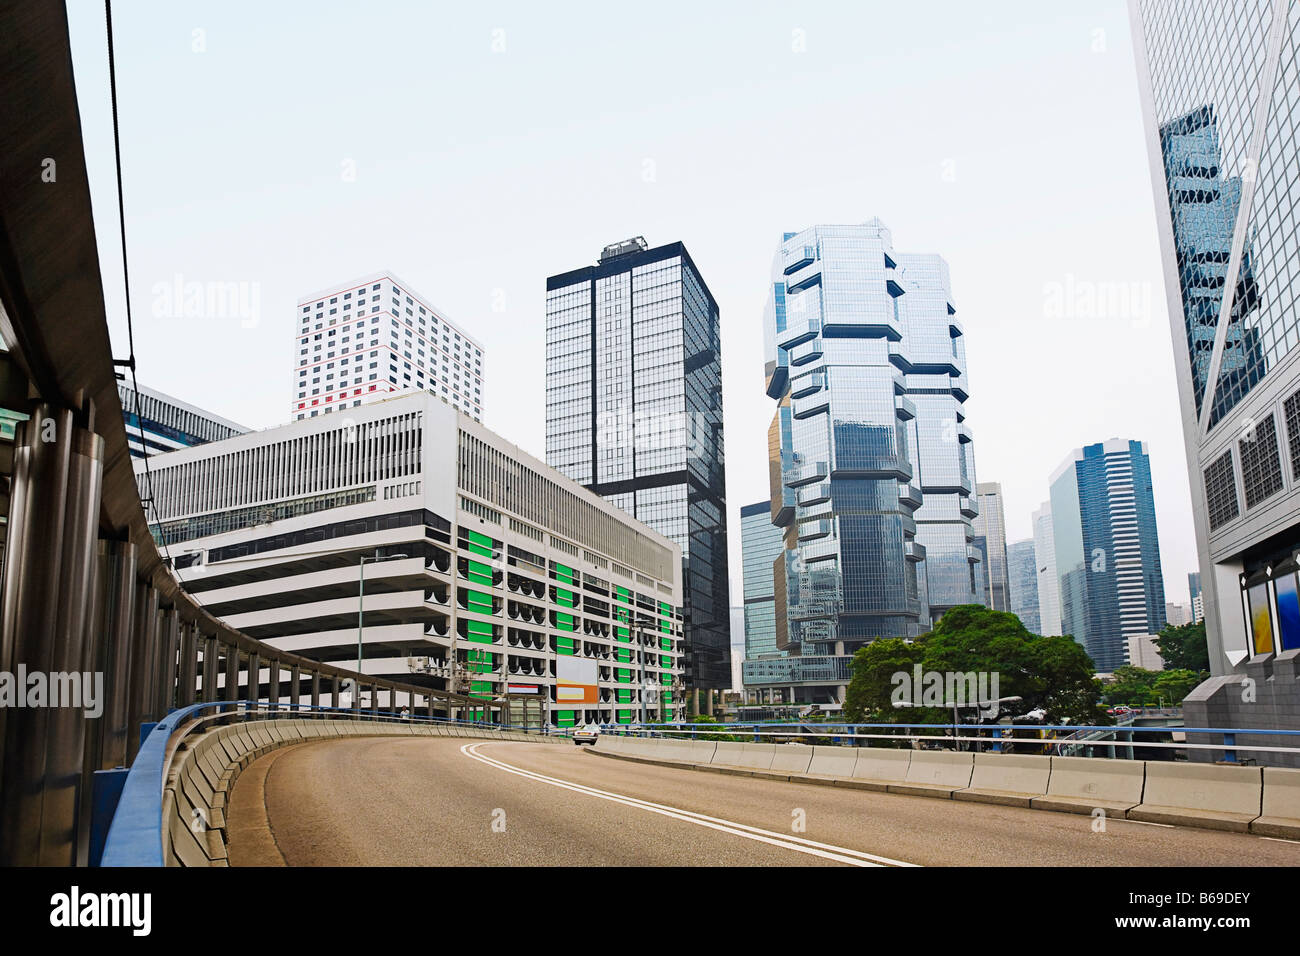 Low angle view of skyscrapers dans une ville, Des Voeux Road, l'île de Hong Kong, Chine Photo Stock